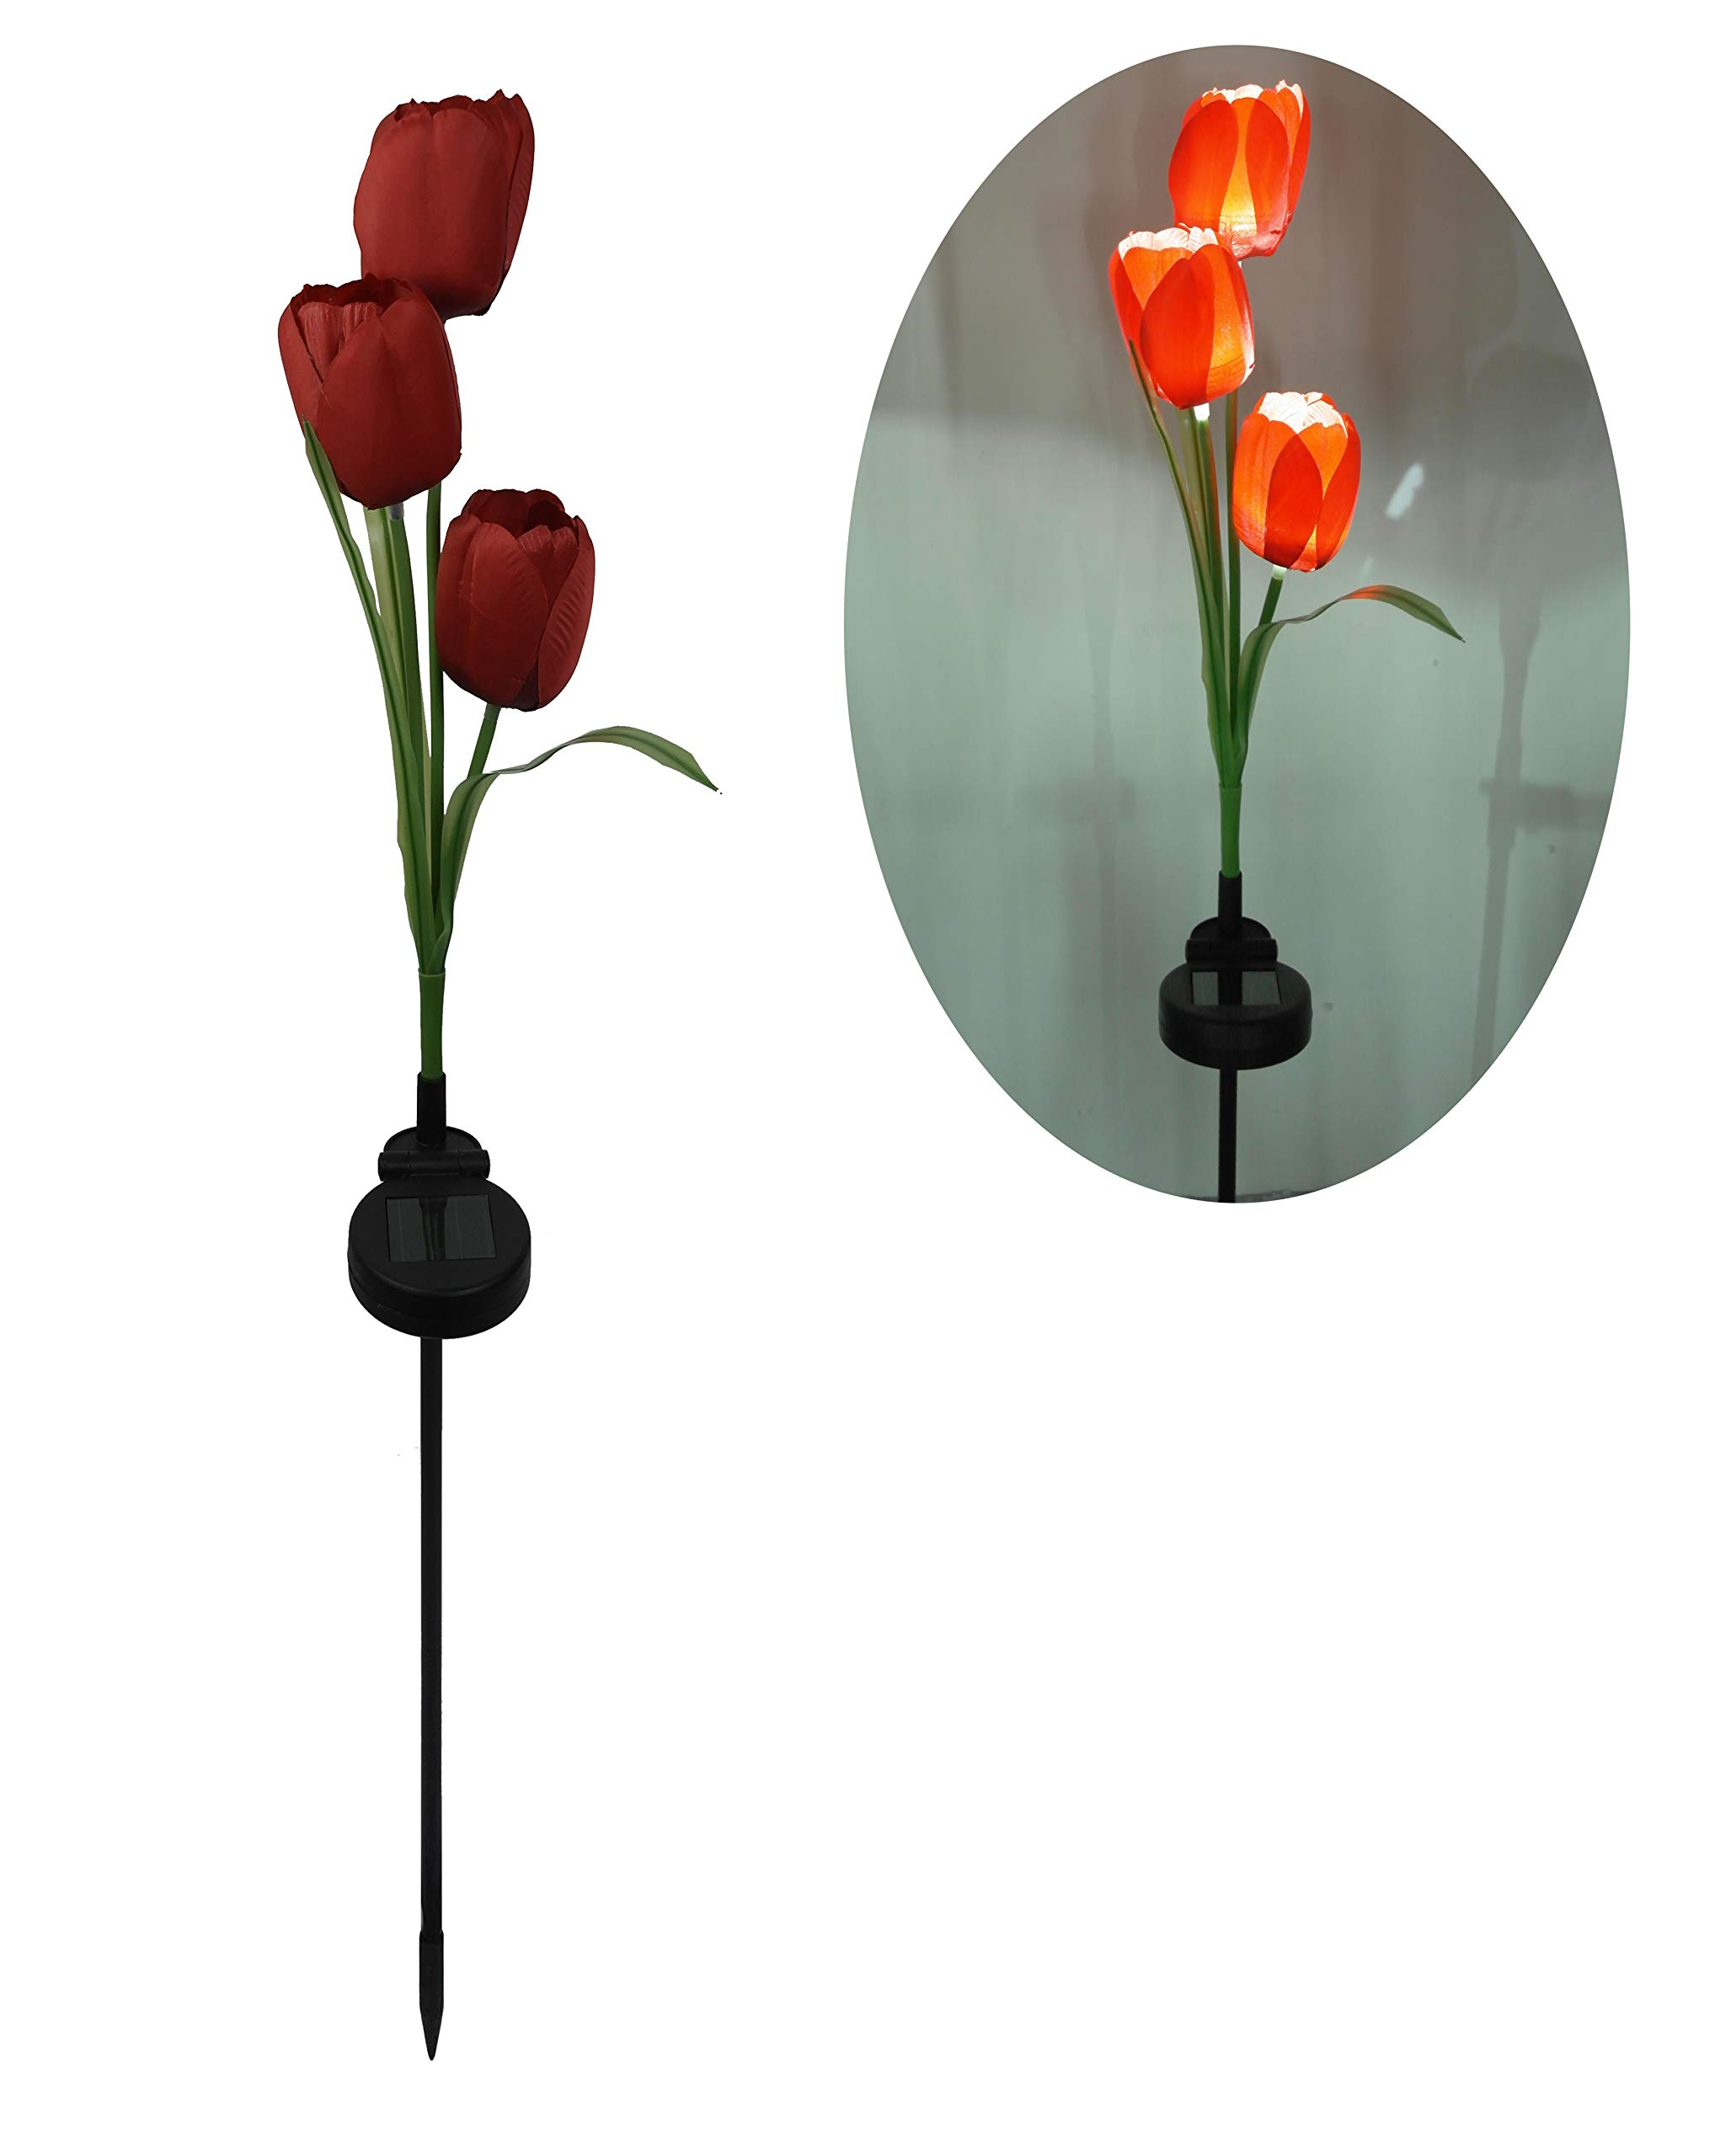 Roaming light Solar Garden Lighted 3pk Flowers-Tulip(Pink/red/White Available) Pack 2, Solar Flower Lights for Patio,Yard Decoration (Red)